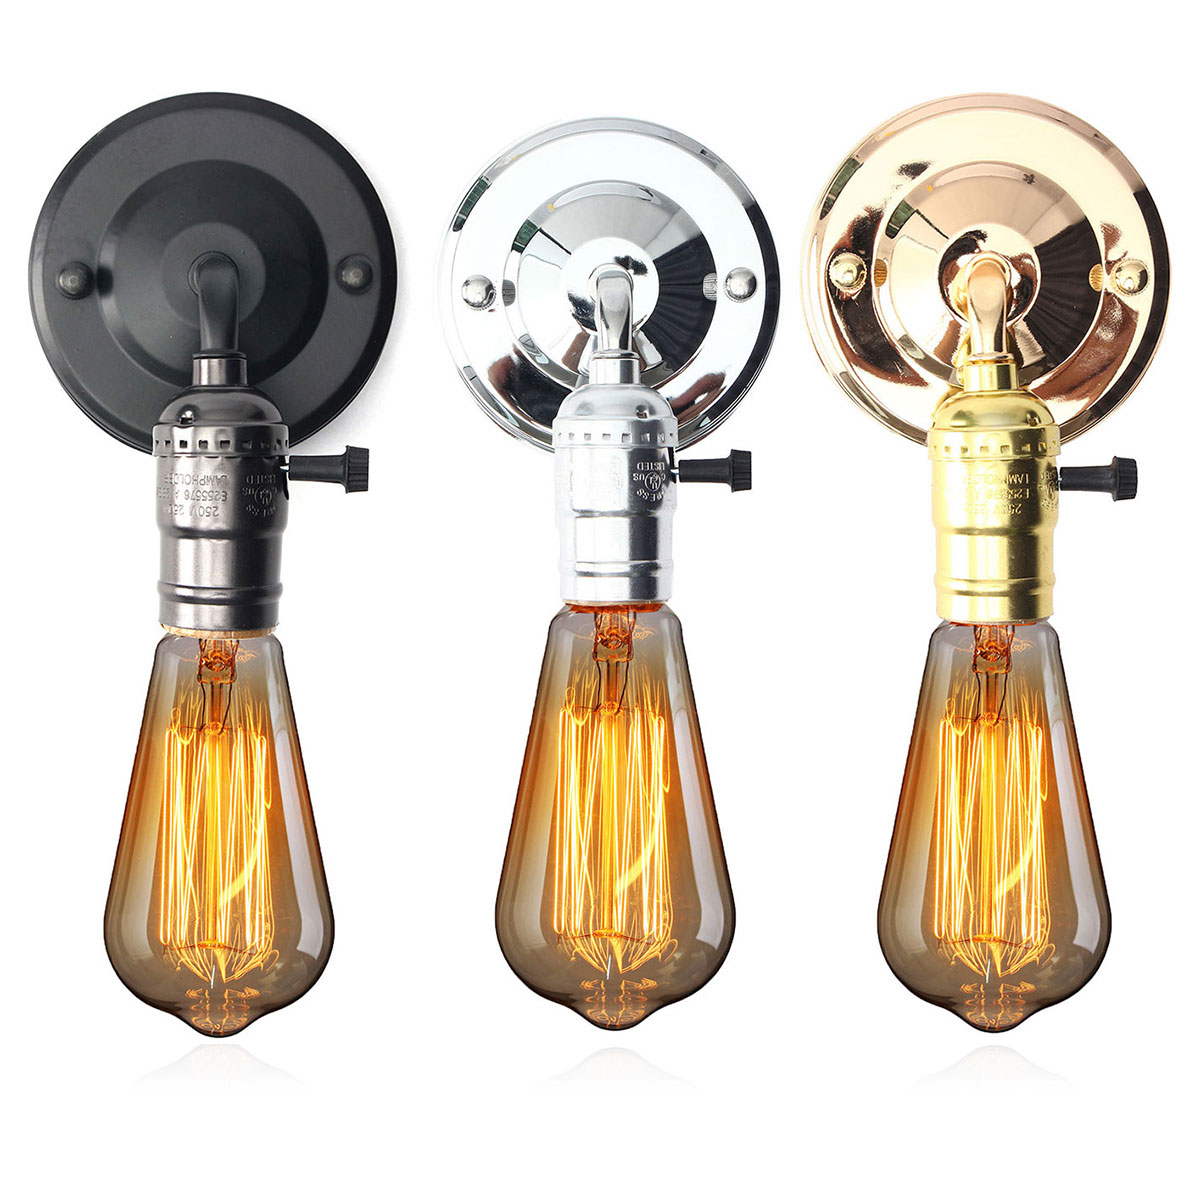 E27 antique vintage switch type wall light sconce lamp bulb socket holder fixture alex nld Lamp bulb types